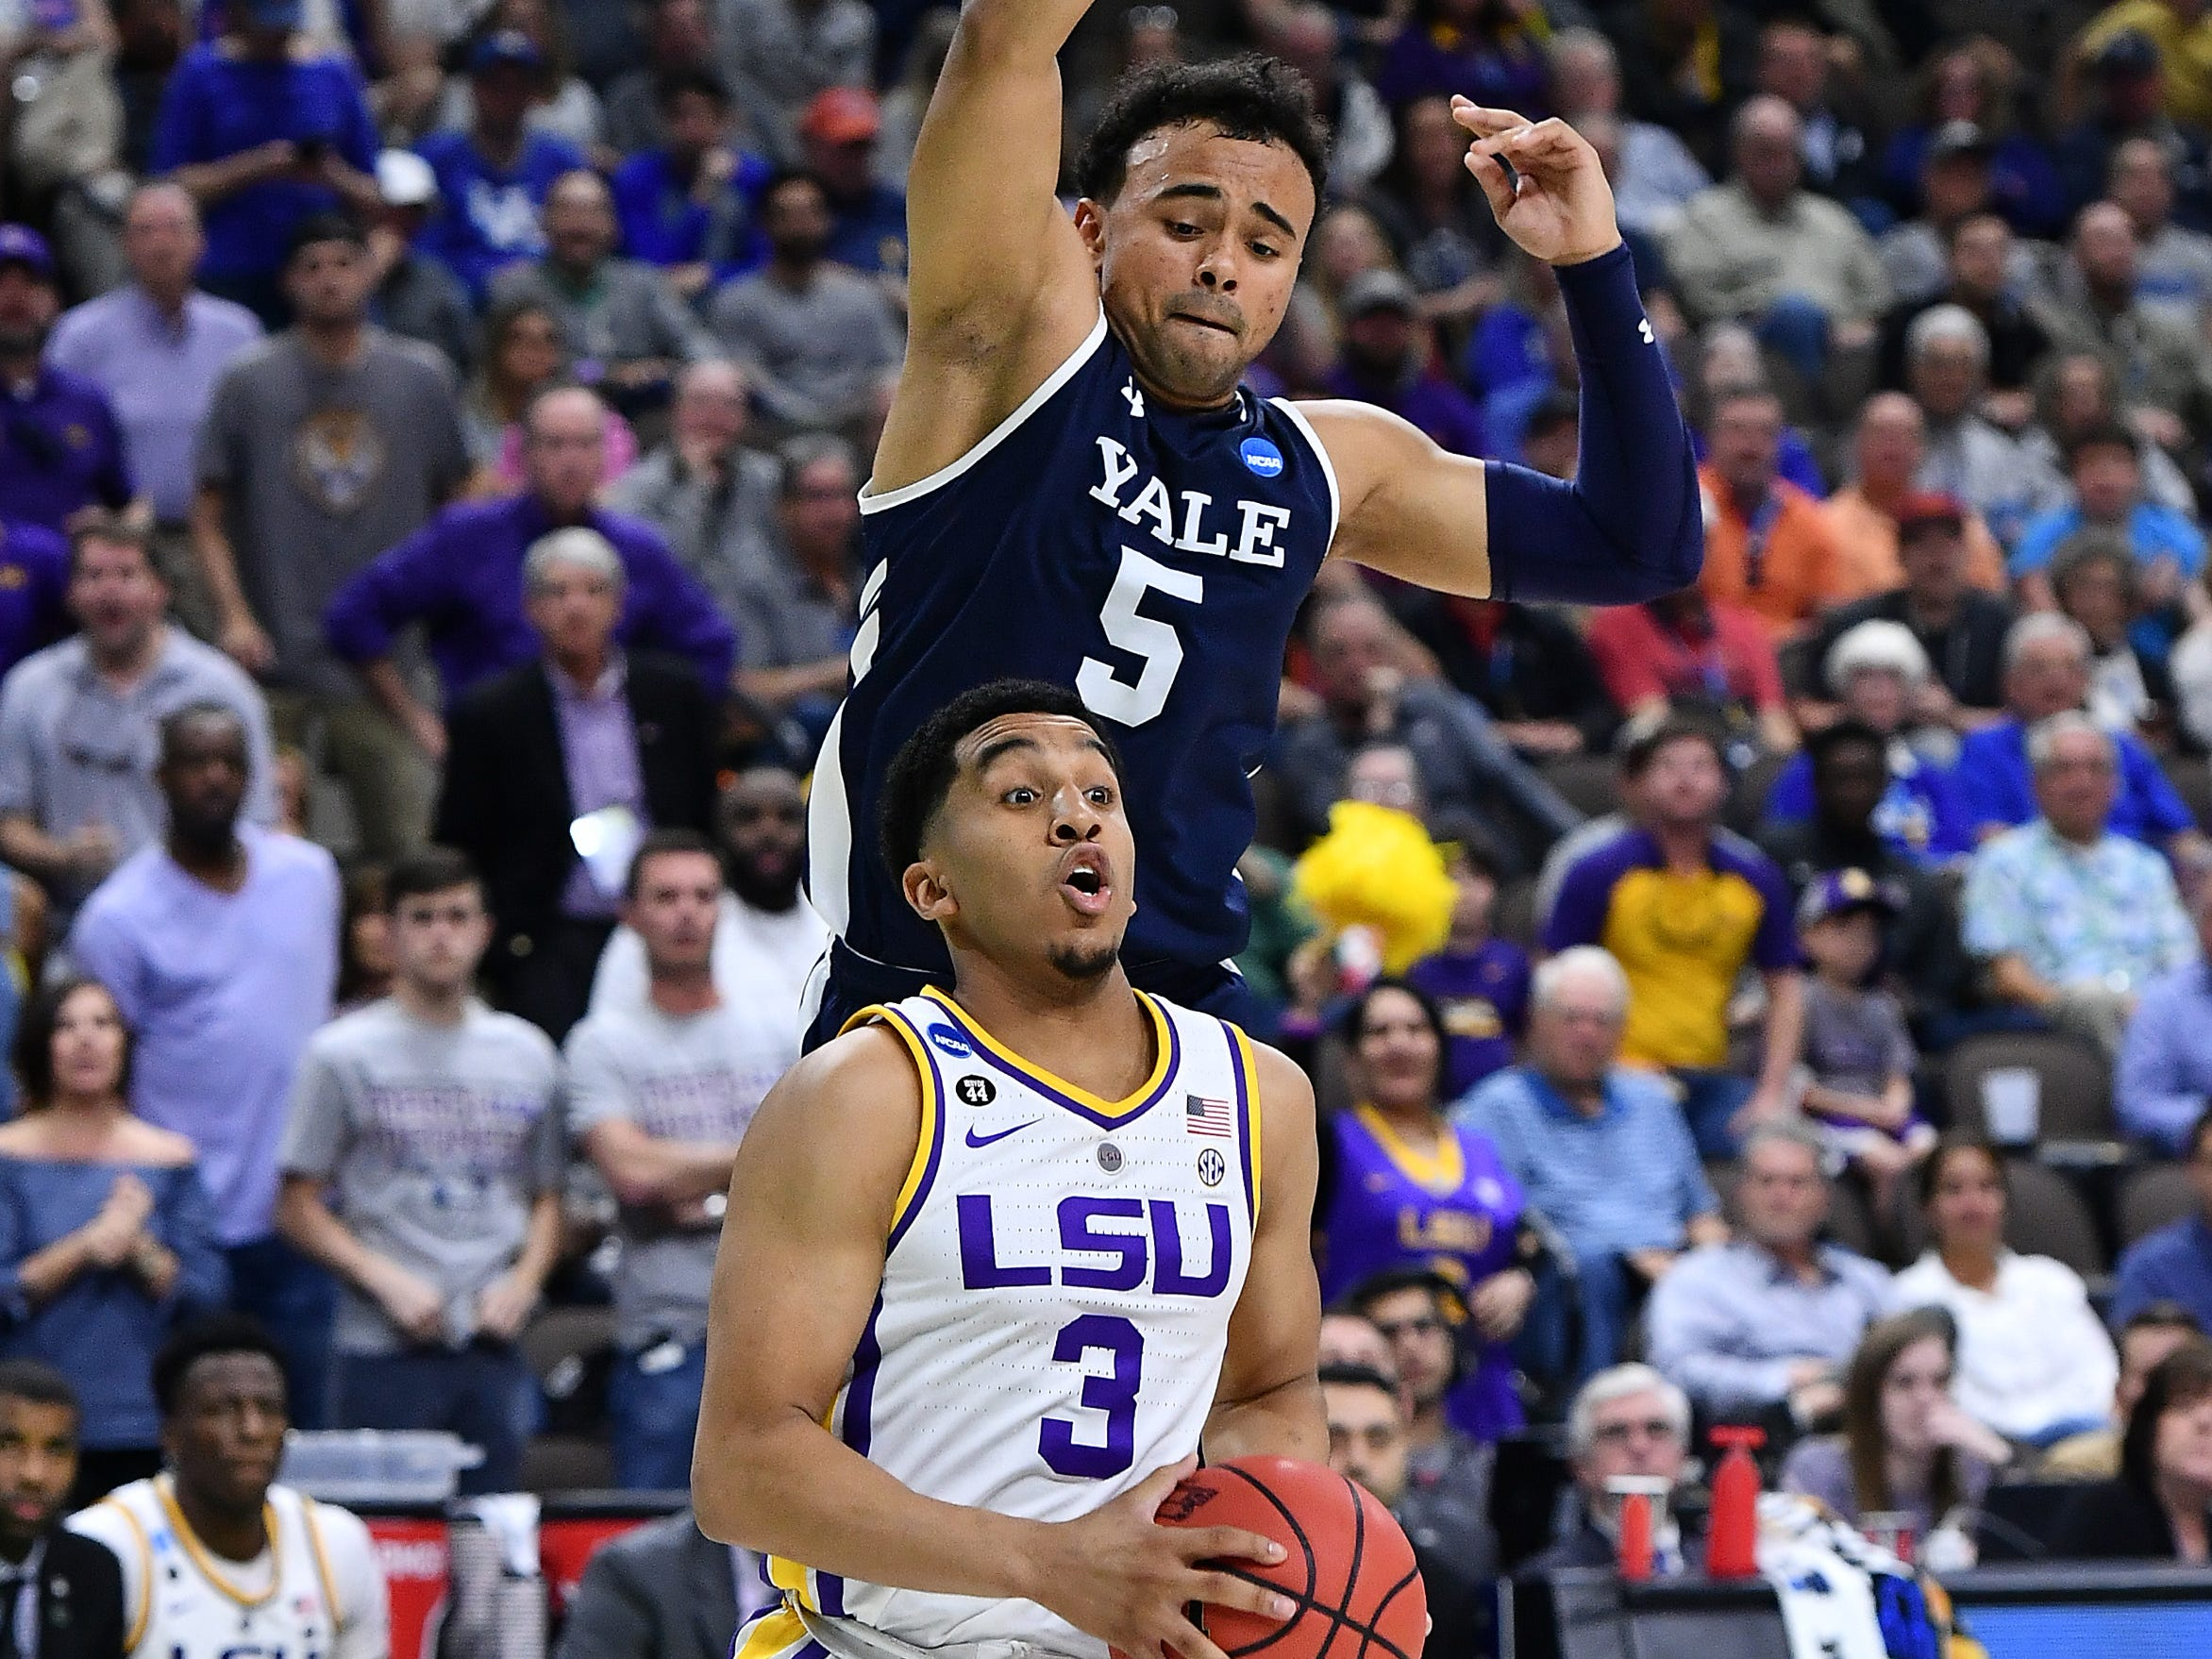 LSU survives Yale, 79-74; Tigers to play Maryland at 11:10 a.m. Saturday on CBS